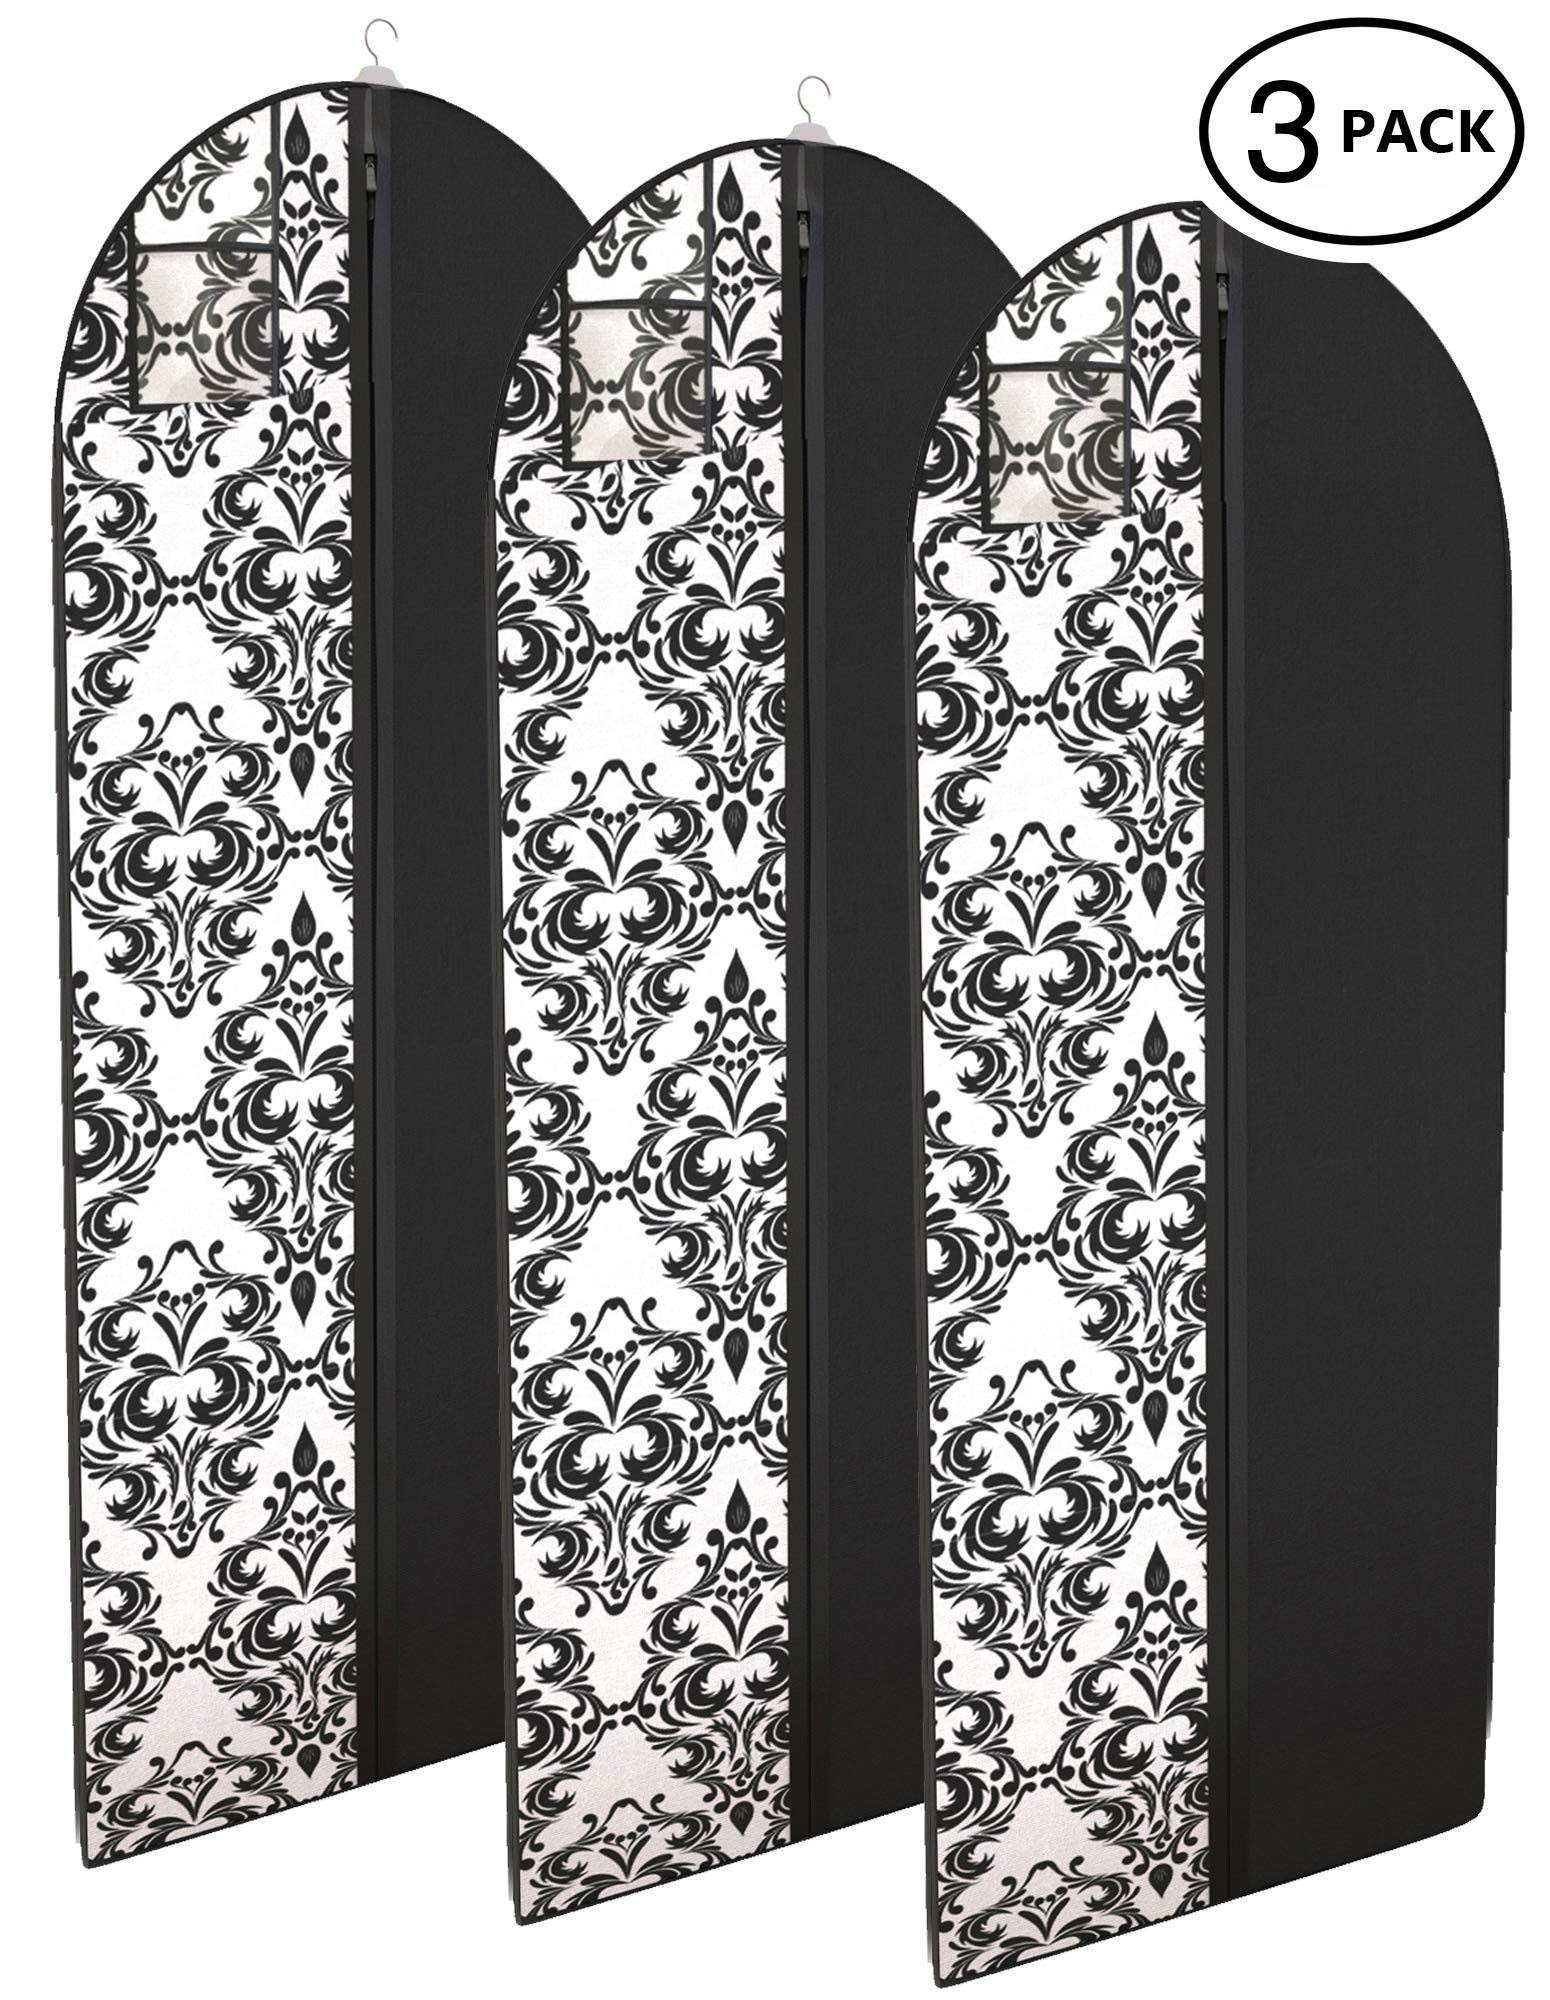 Your Bags Damask Dress and Gown Garment Travel Bags 3 Pack - 54'' x 24'' - Hanging Window